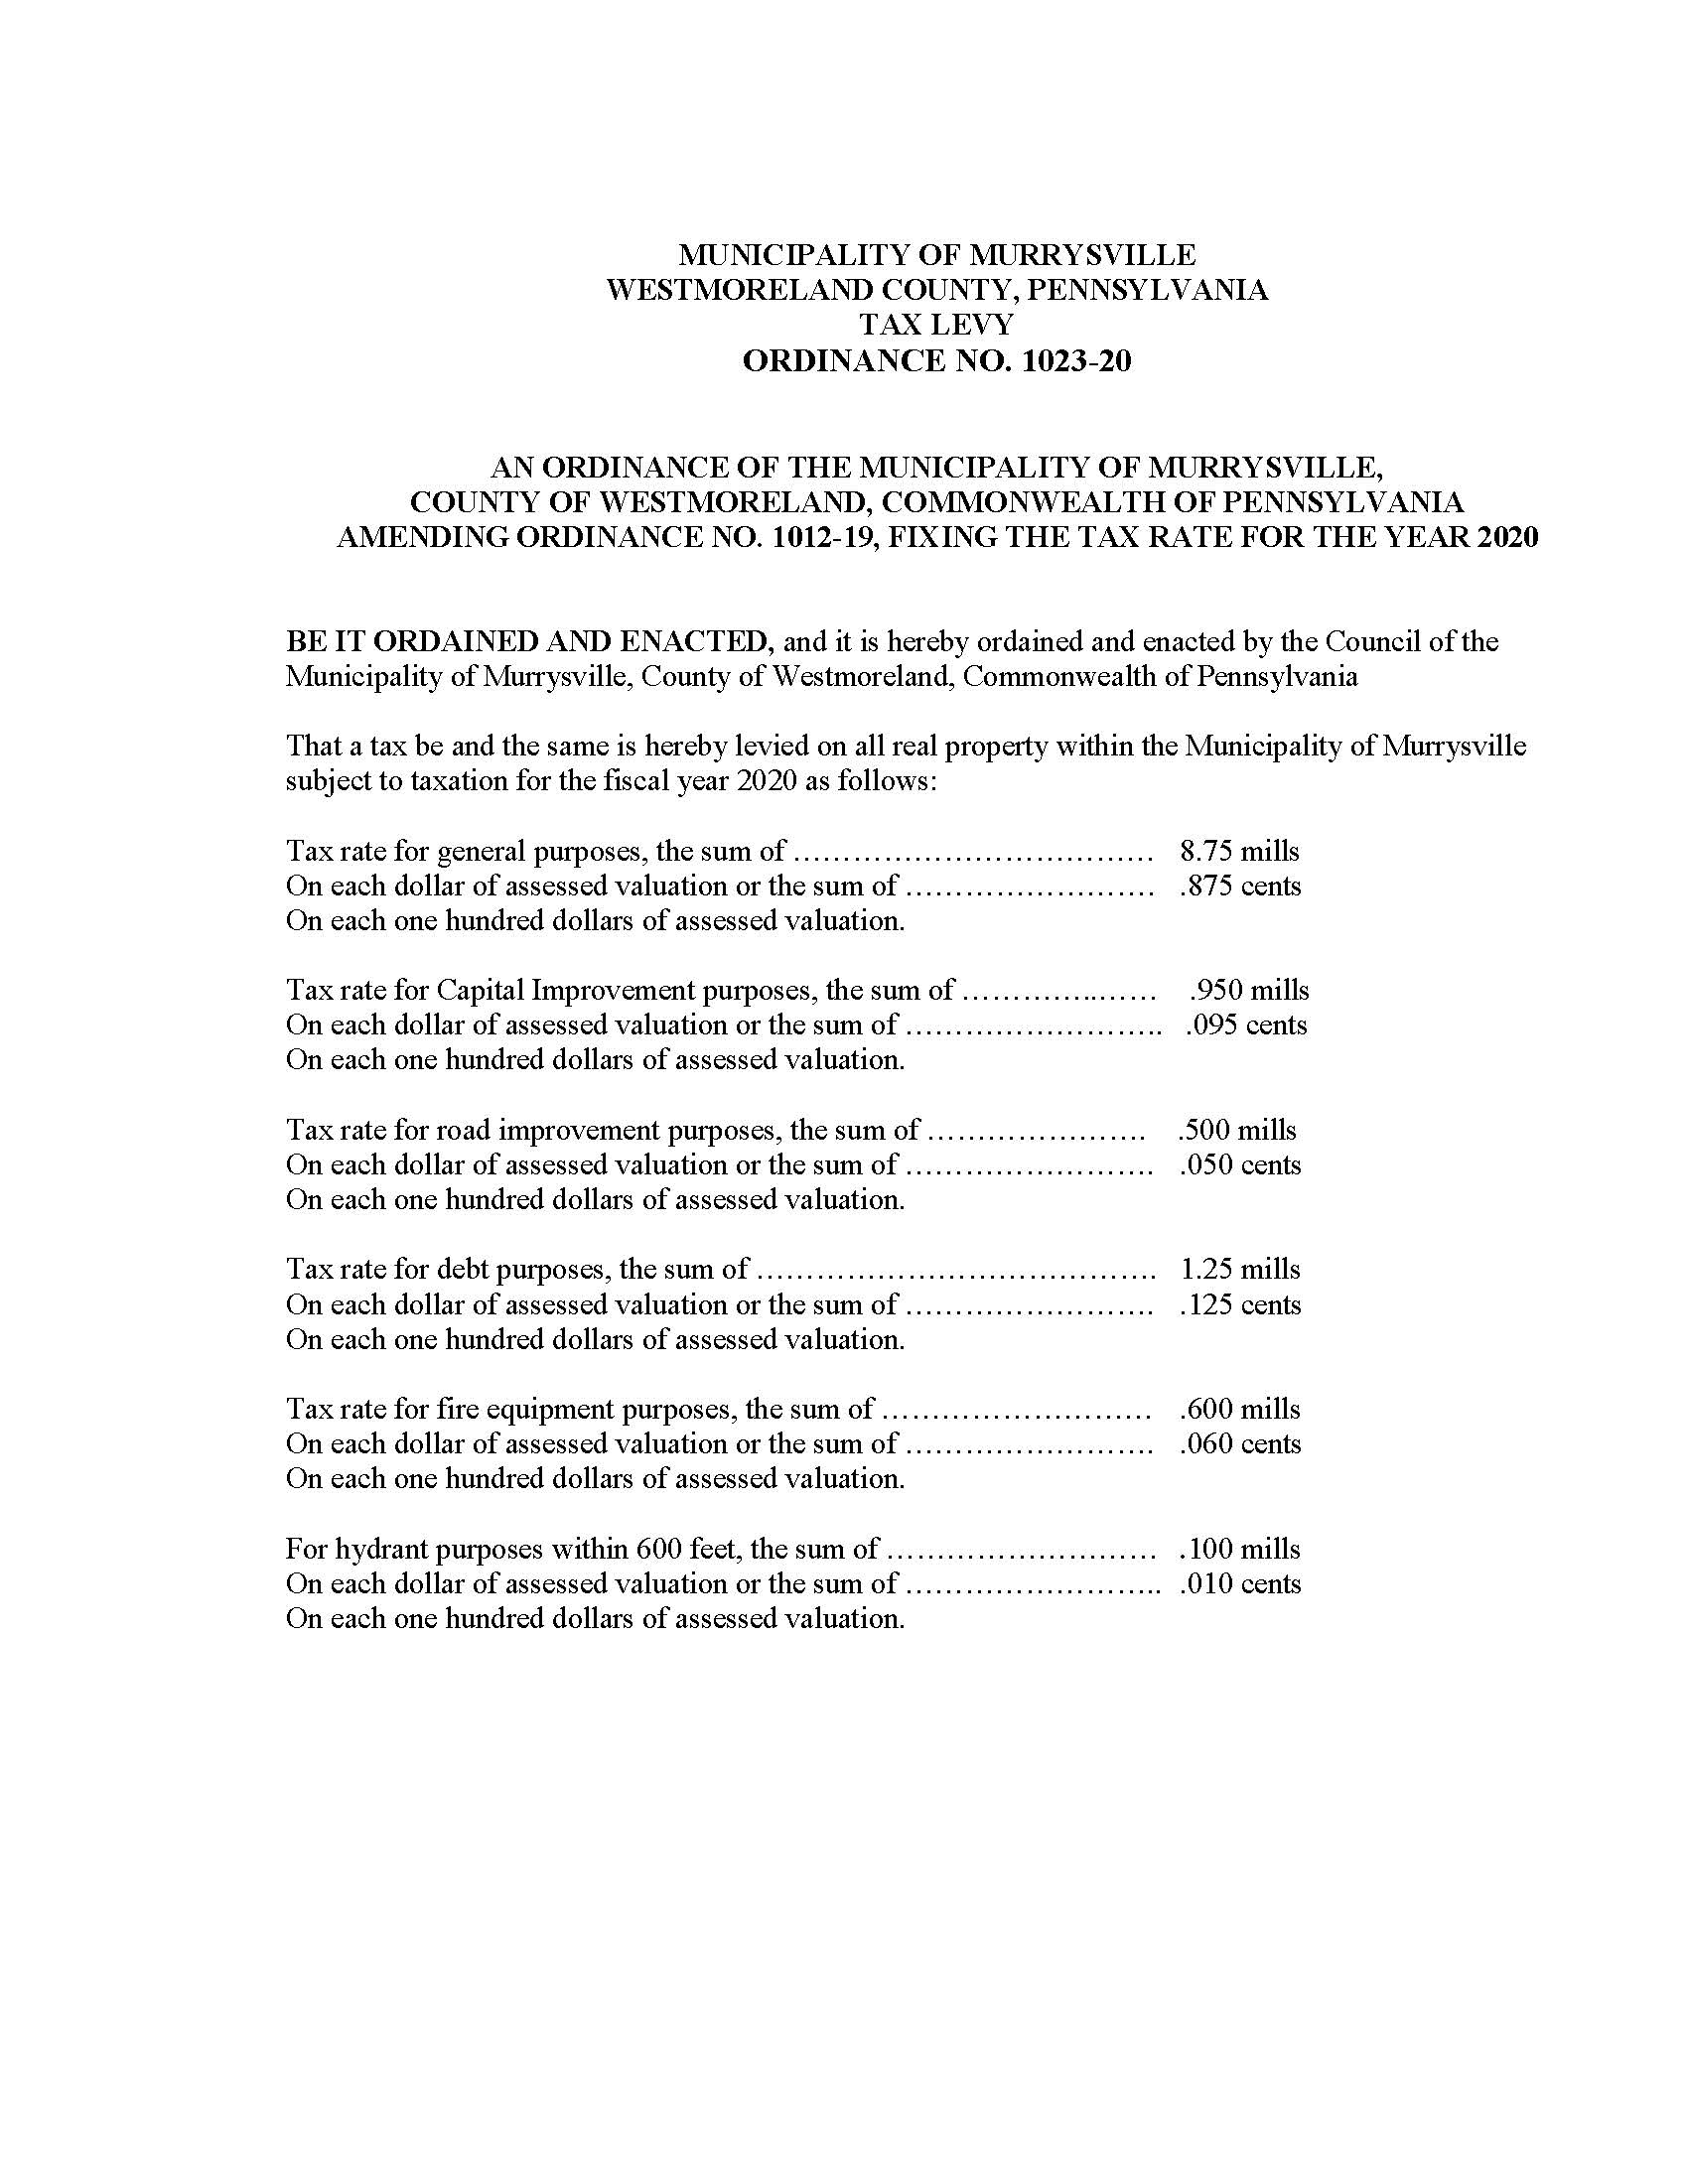 Ordinance No. 1023-20 Amending the 2020 Tax Ordinance_Page_1